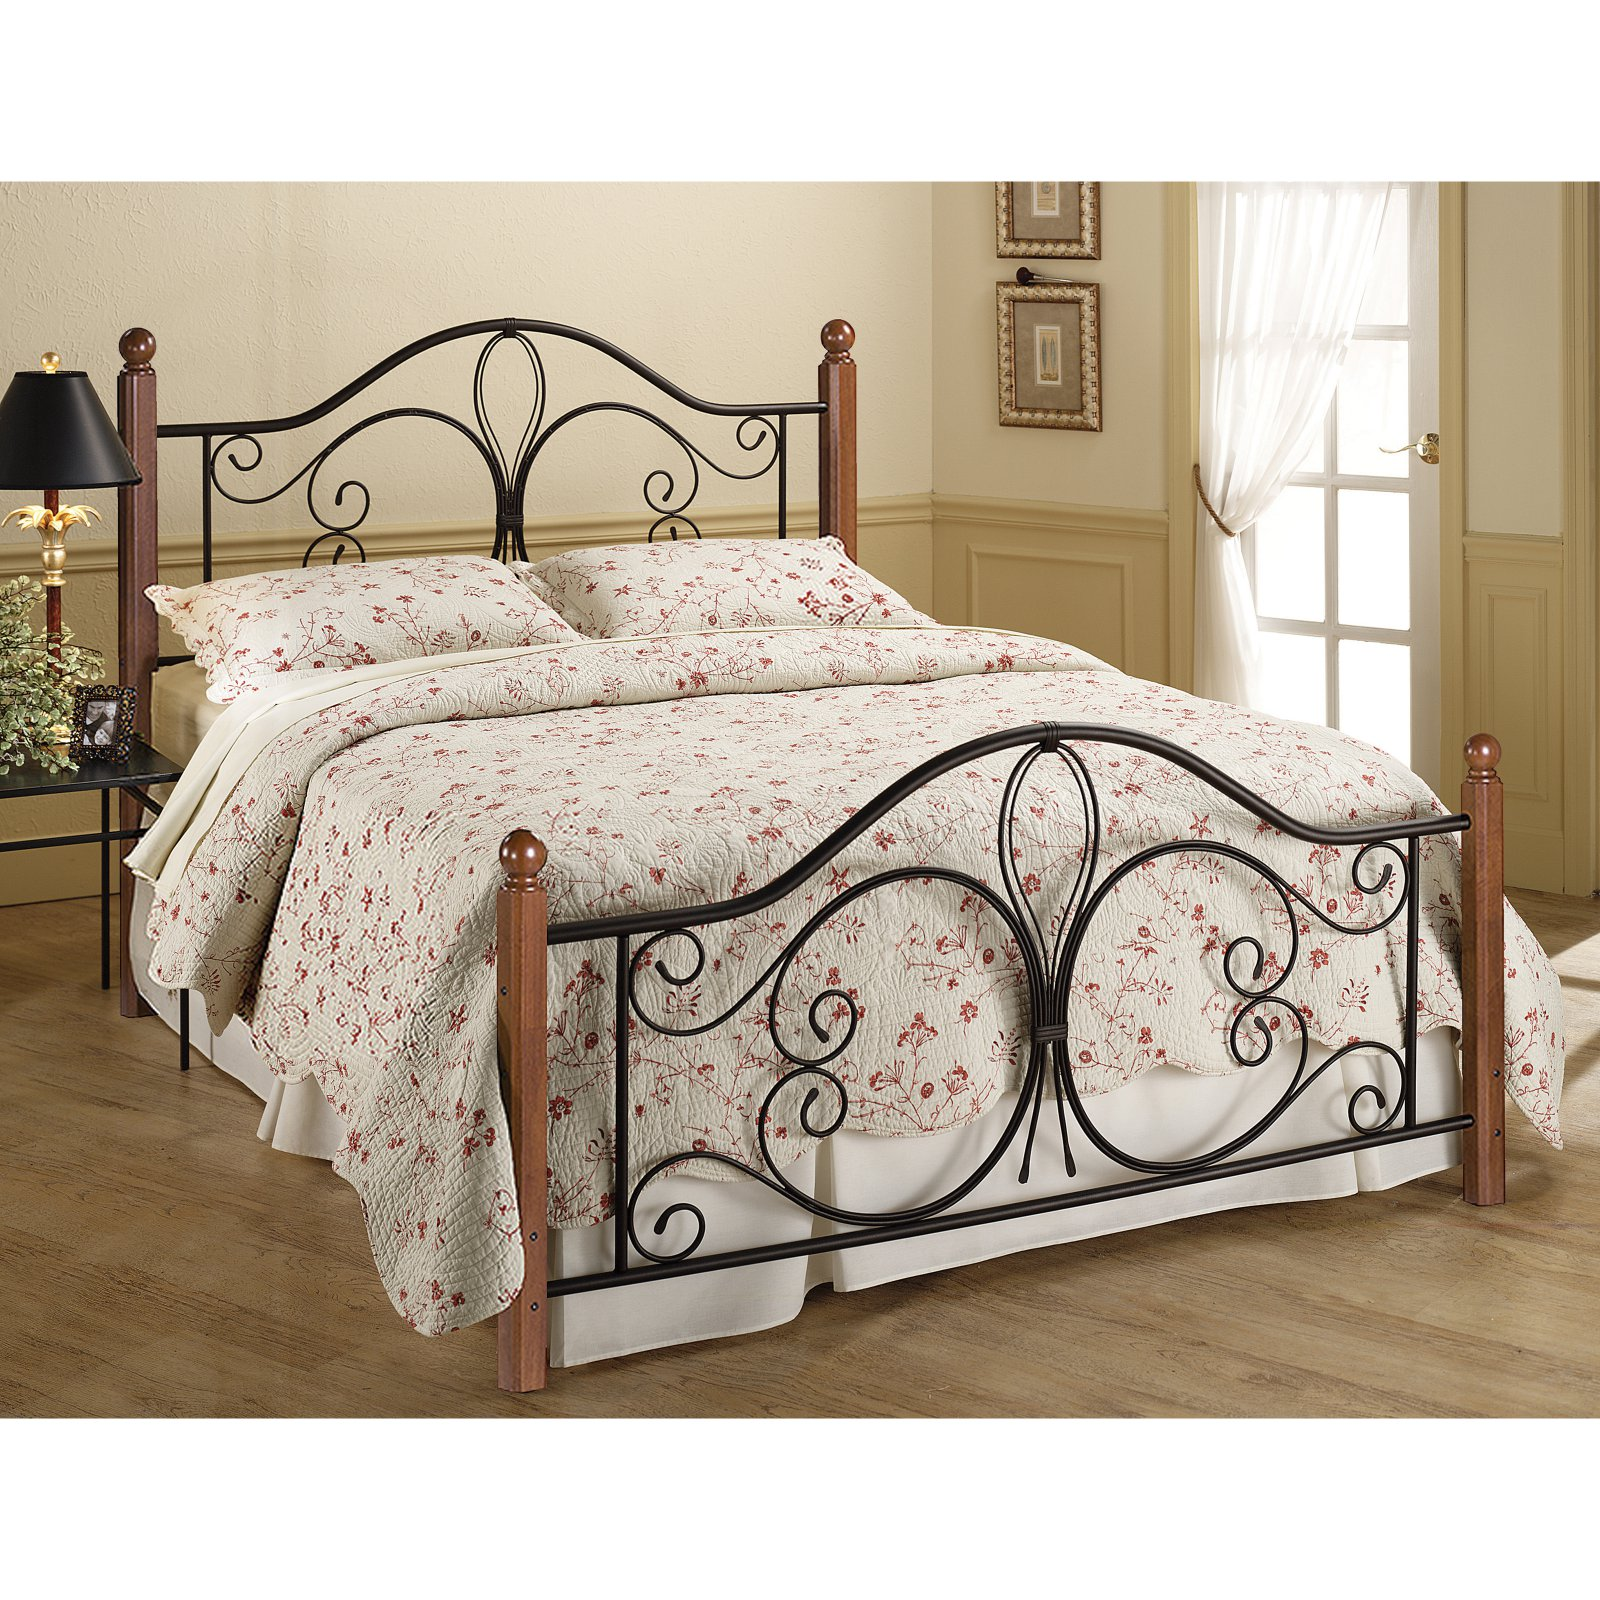 Hillsdale Furniture Milwaukee Wood Post Queen Bed with Bedframe